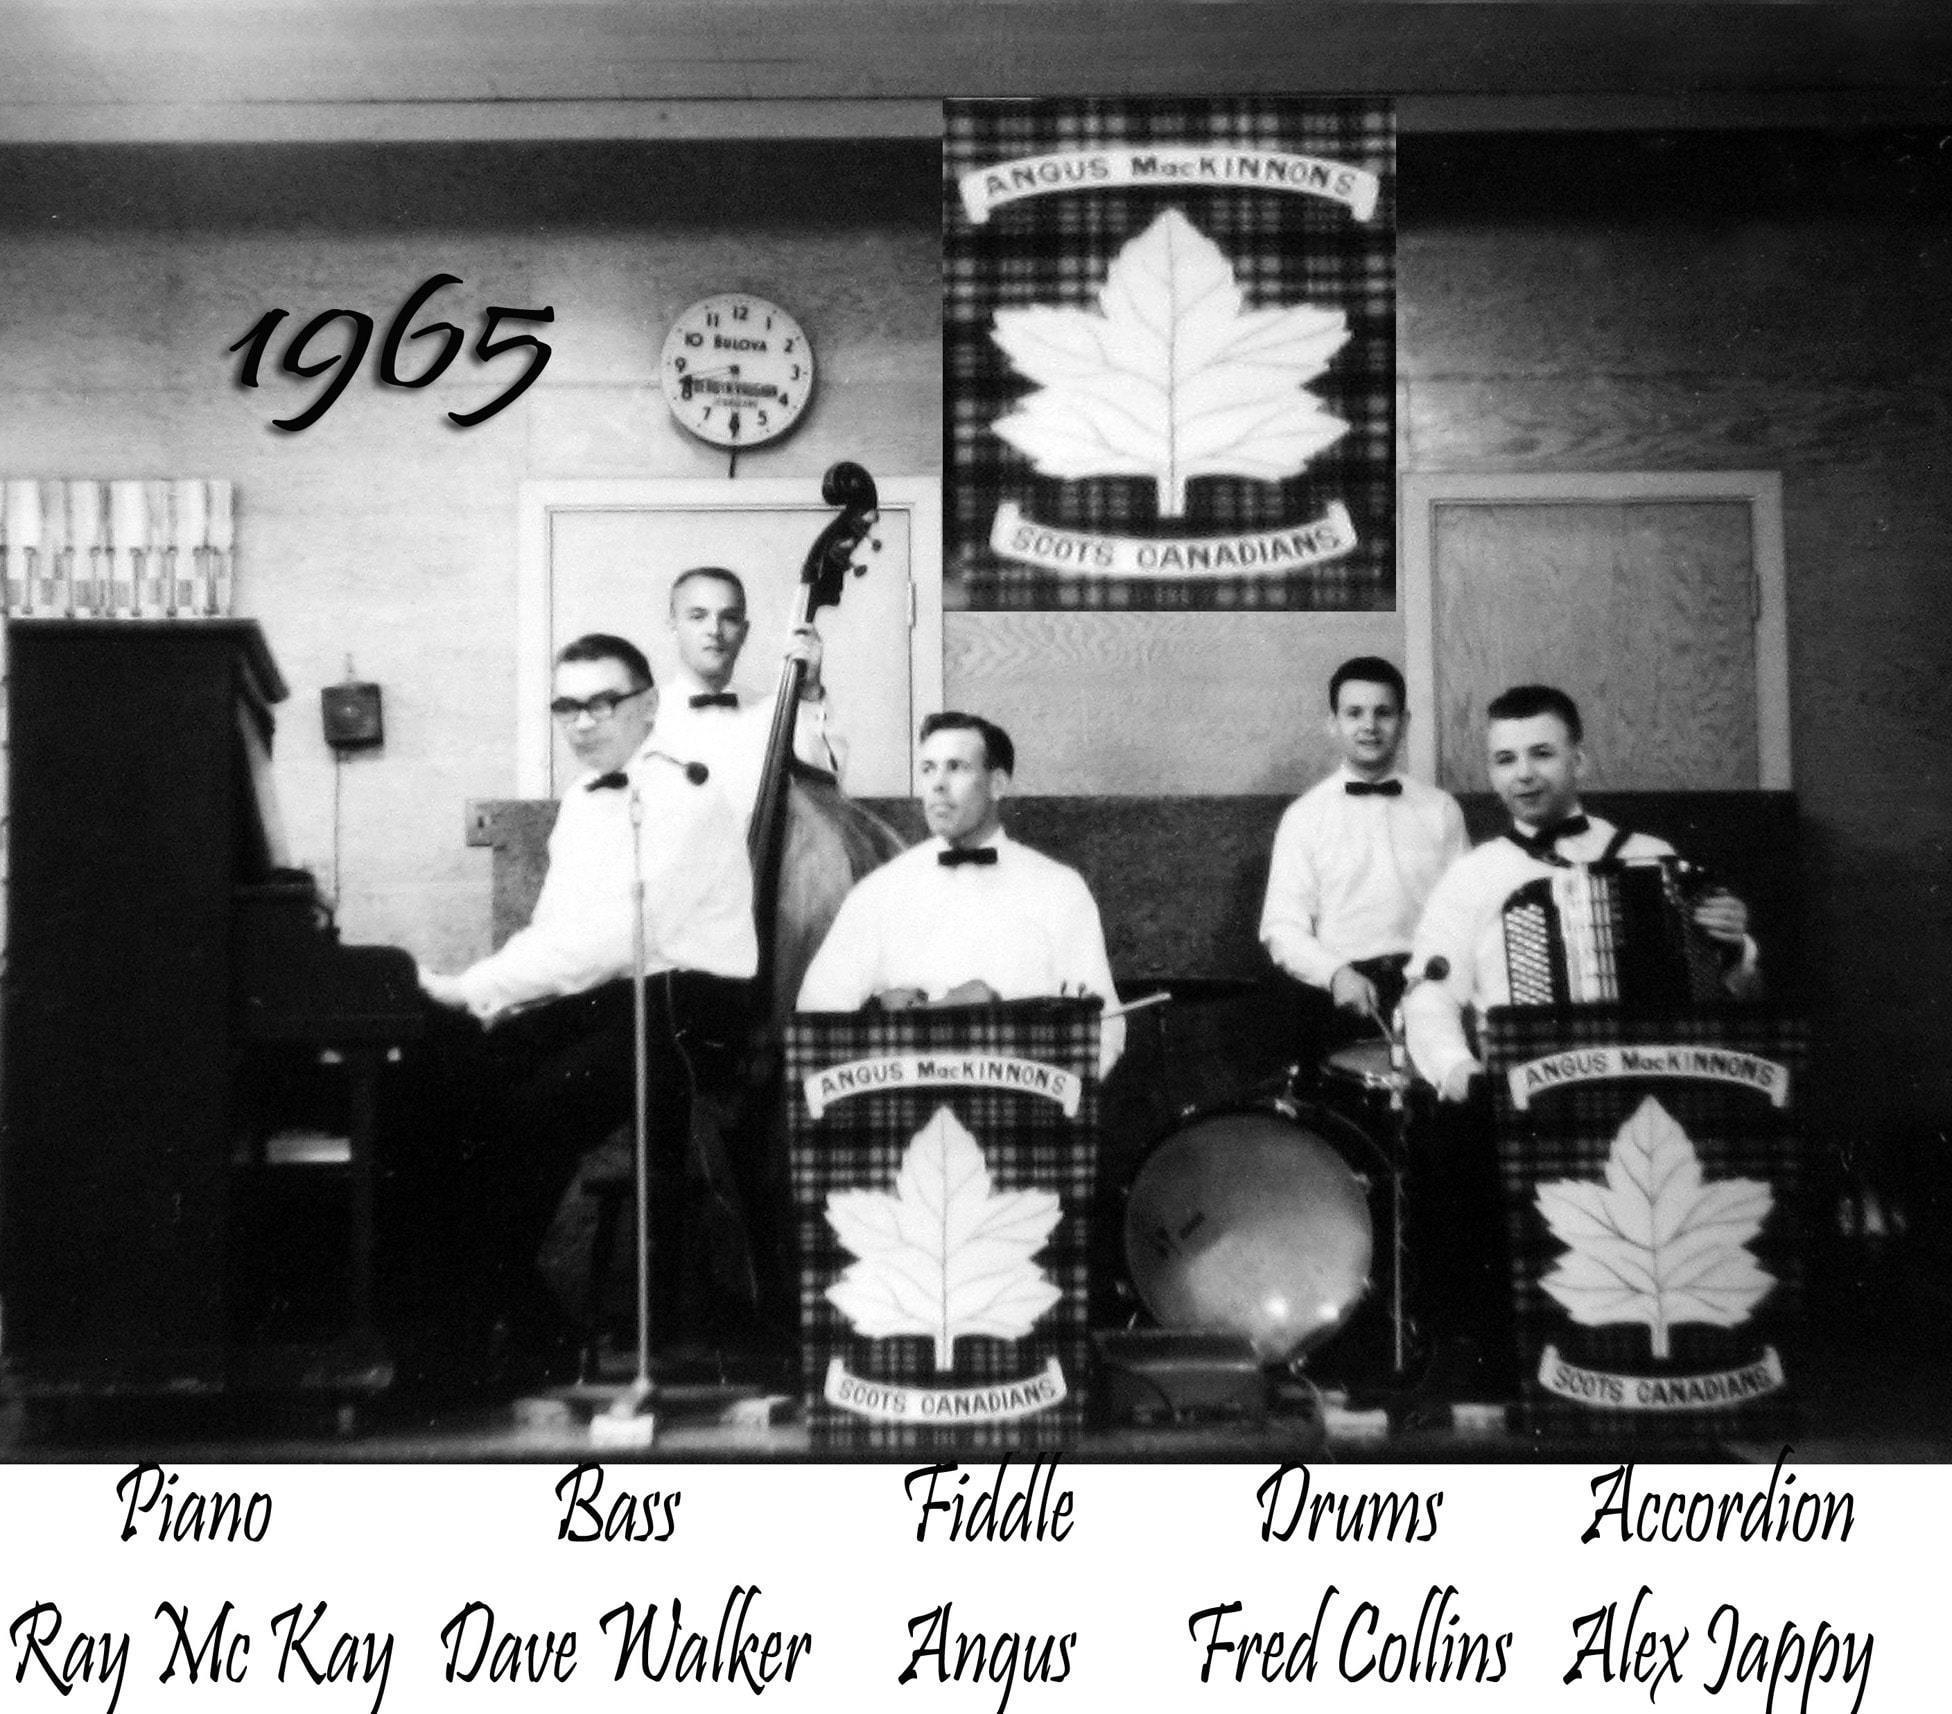 Angus MacKinnon And The Scots Canadians Image